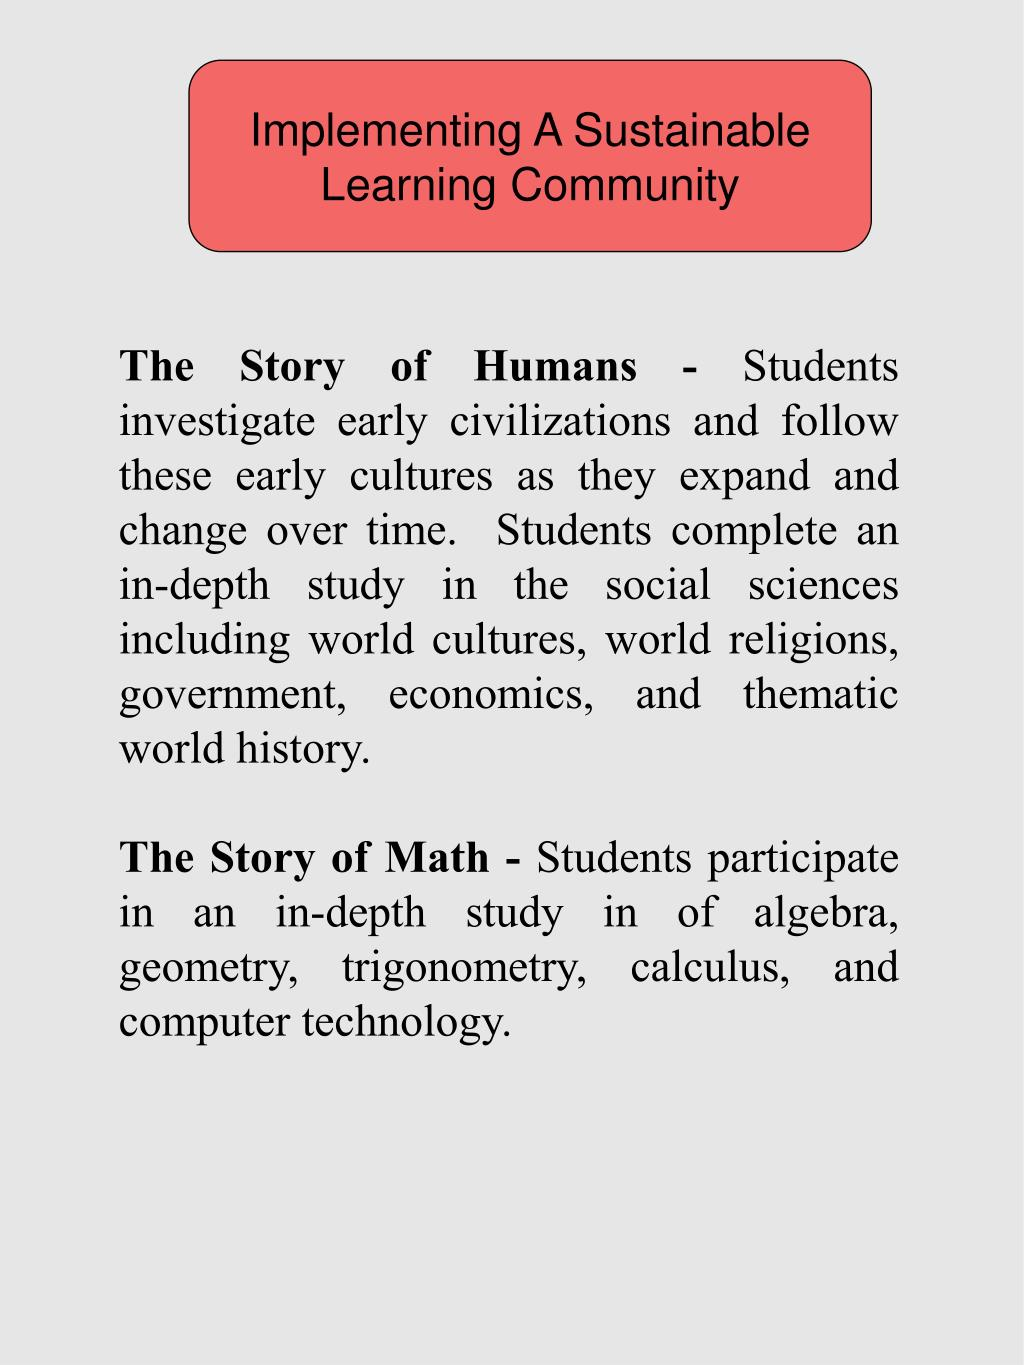 Implementing A Sustainable Learning Community